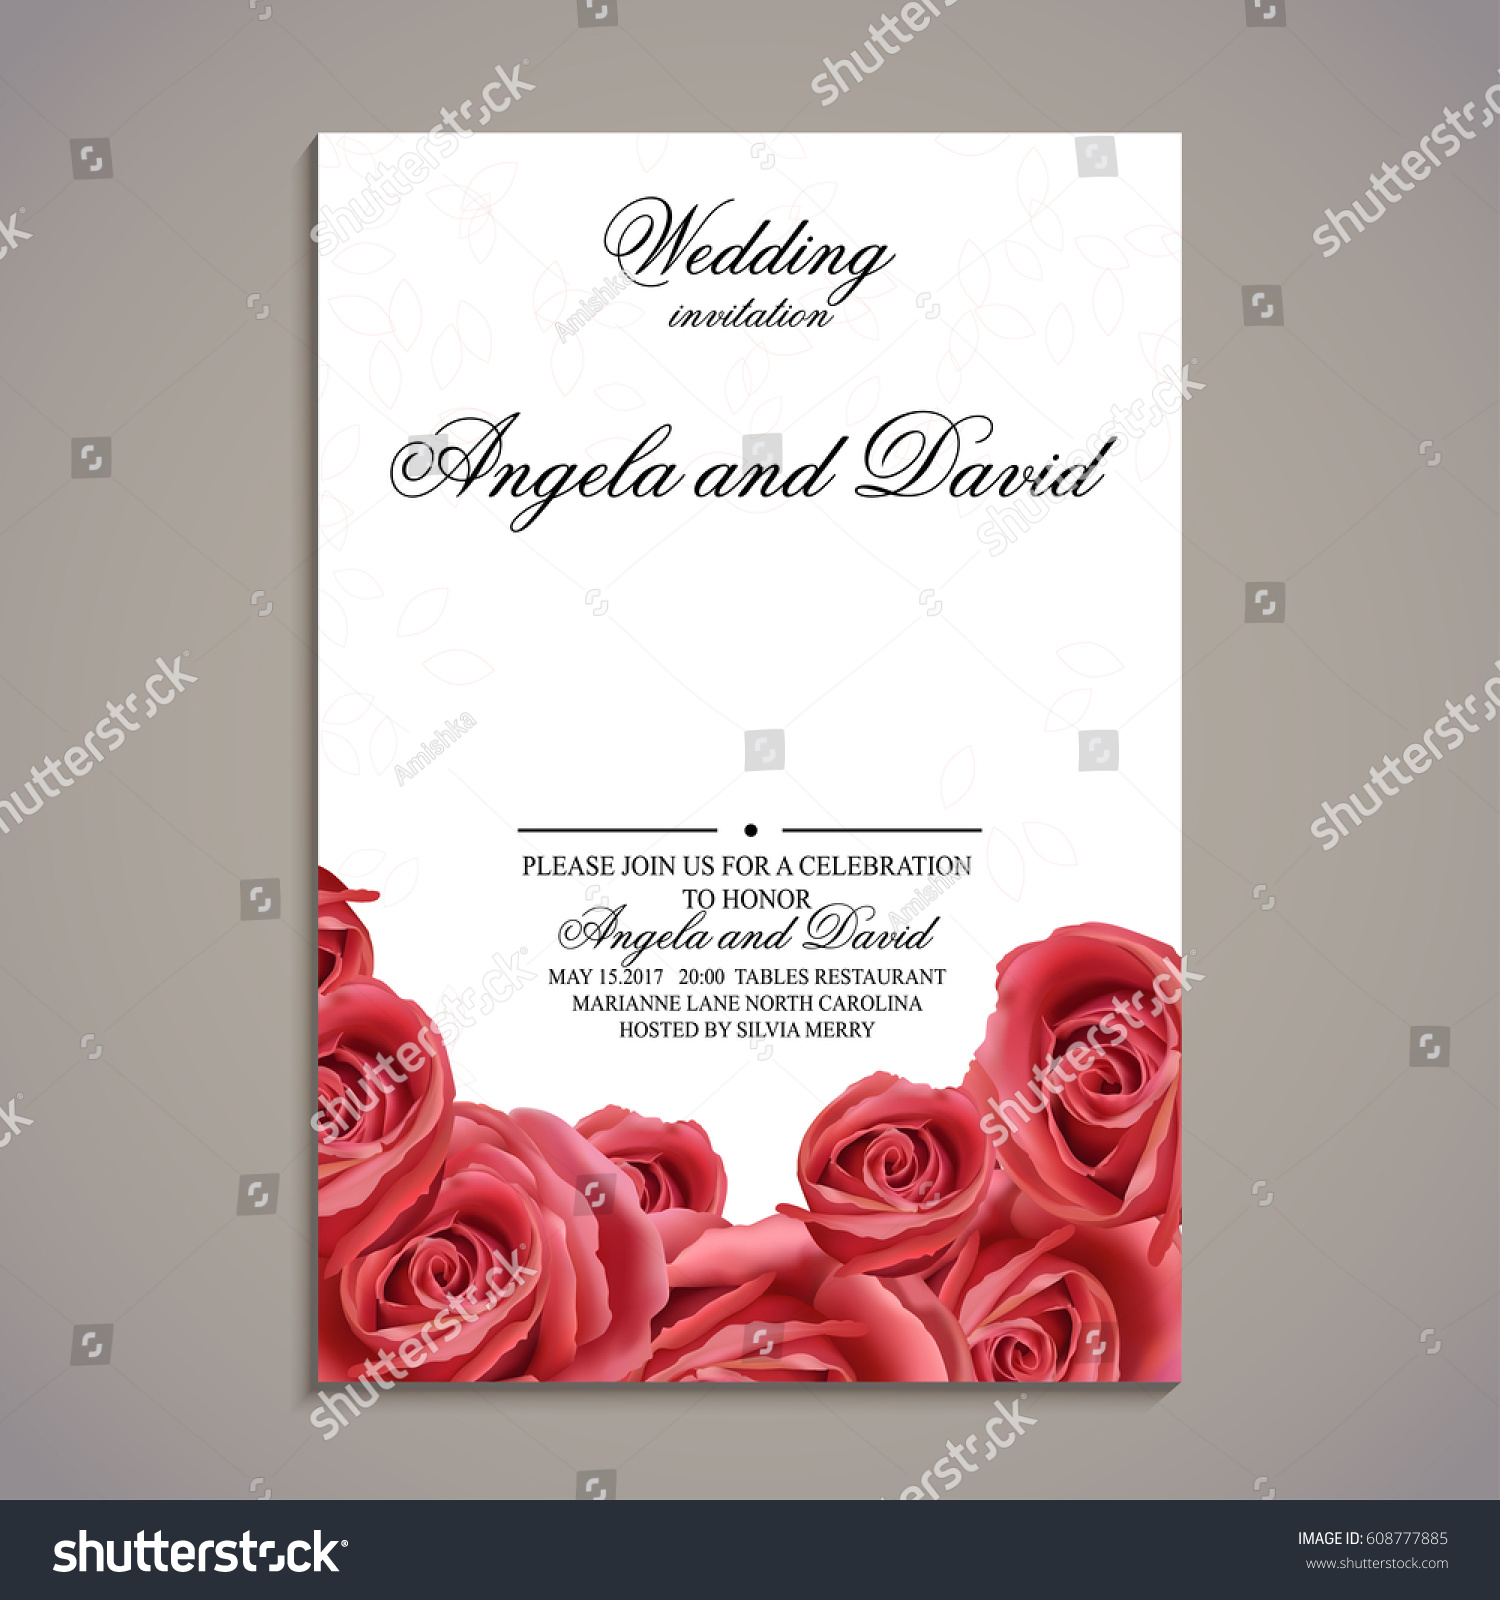 Magnificent Wedding Invitation Card With Photo Gift - Invitations ...